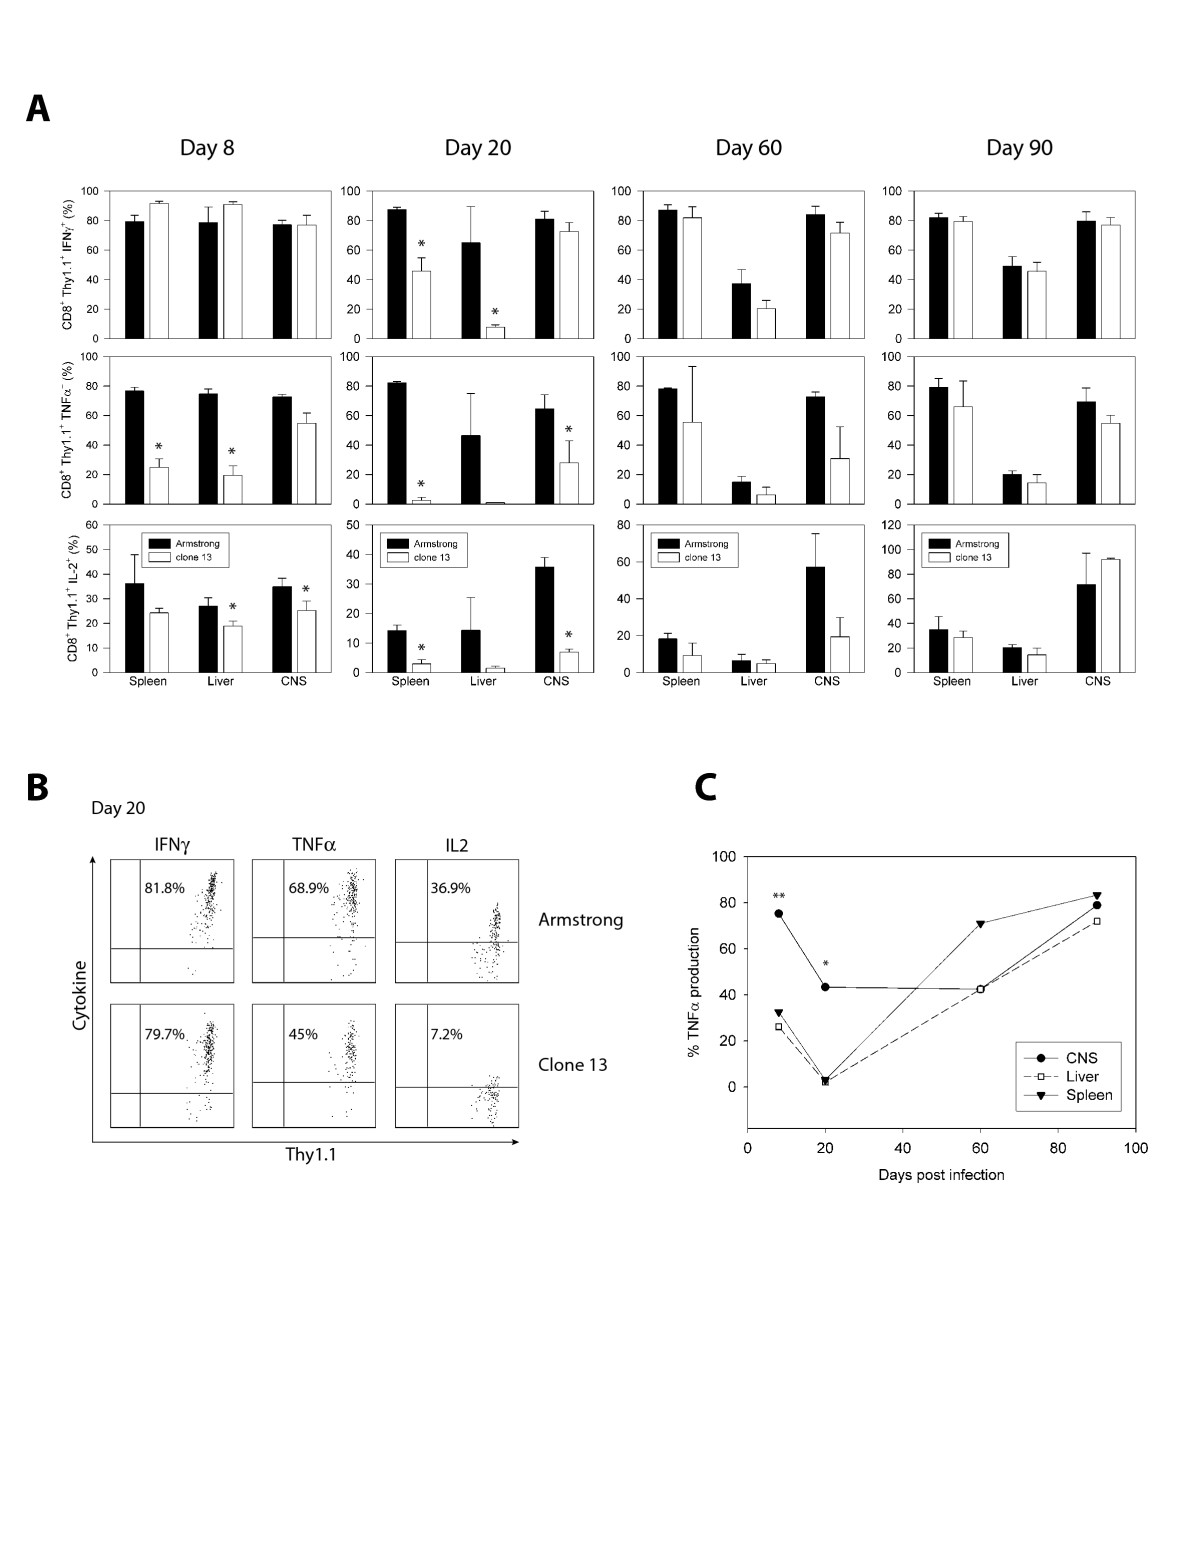 http://static-content.springer.com/image/art%3A10.1186%2F1743-422X-4-53/MediaObjects/12985_2007_Article_266_Fig5_HTML.jpg